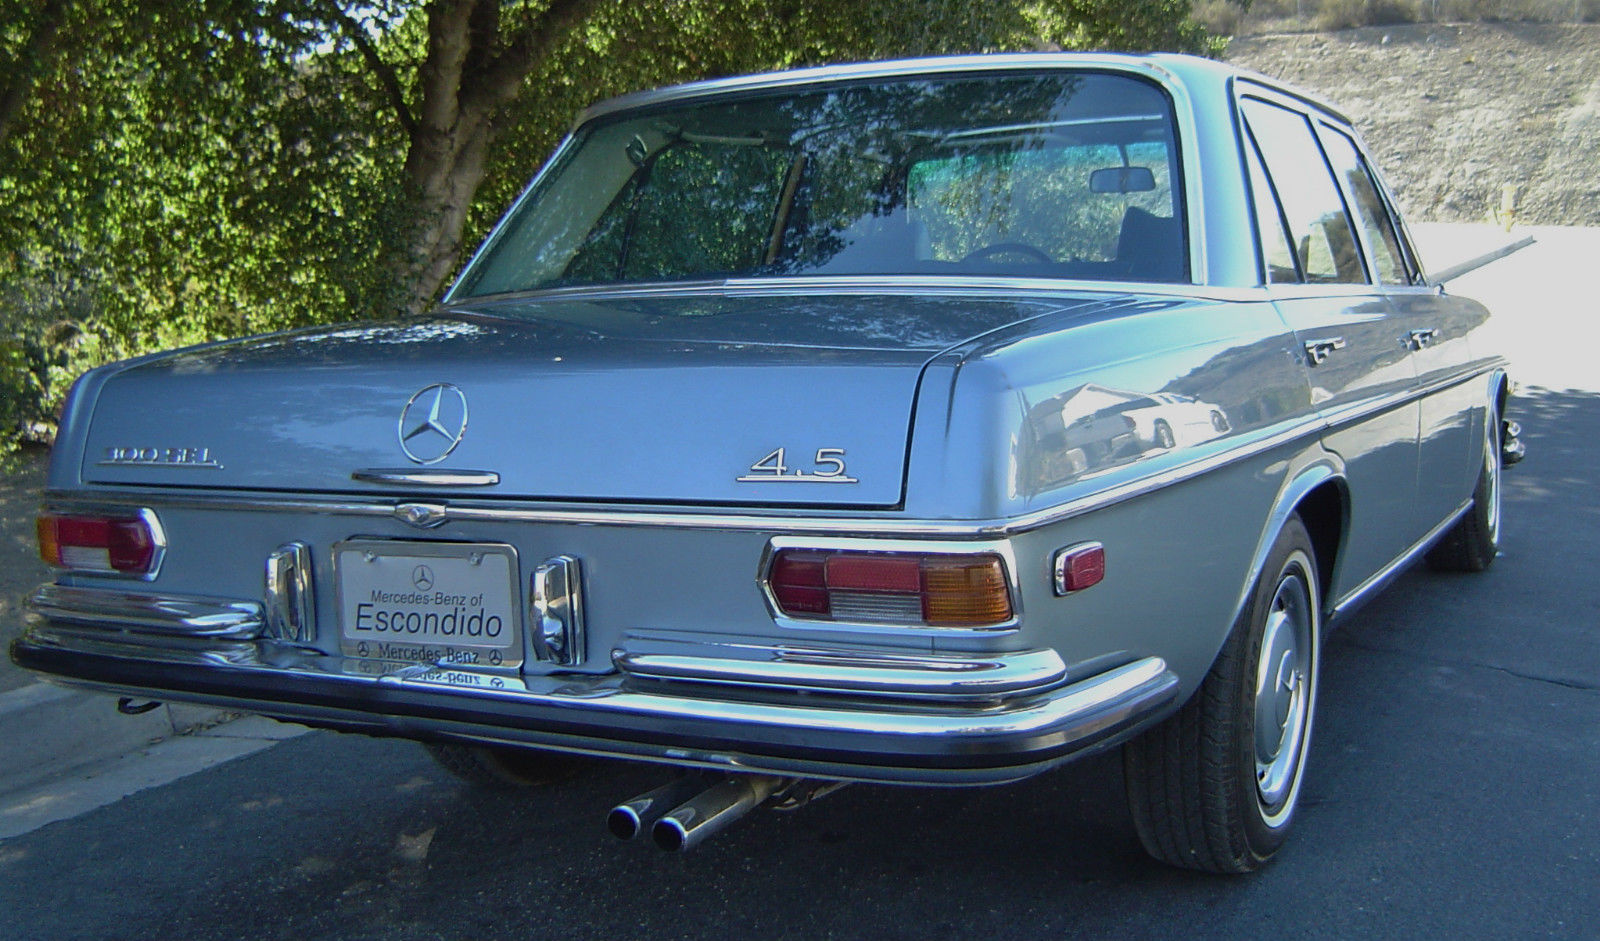 1972 mercedes benz 300 sel 4 5 w109 classic mercedes for 1972 mercedes benz